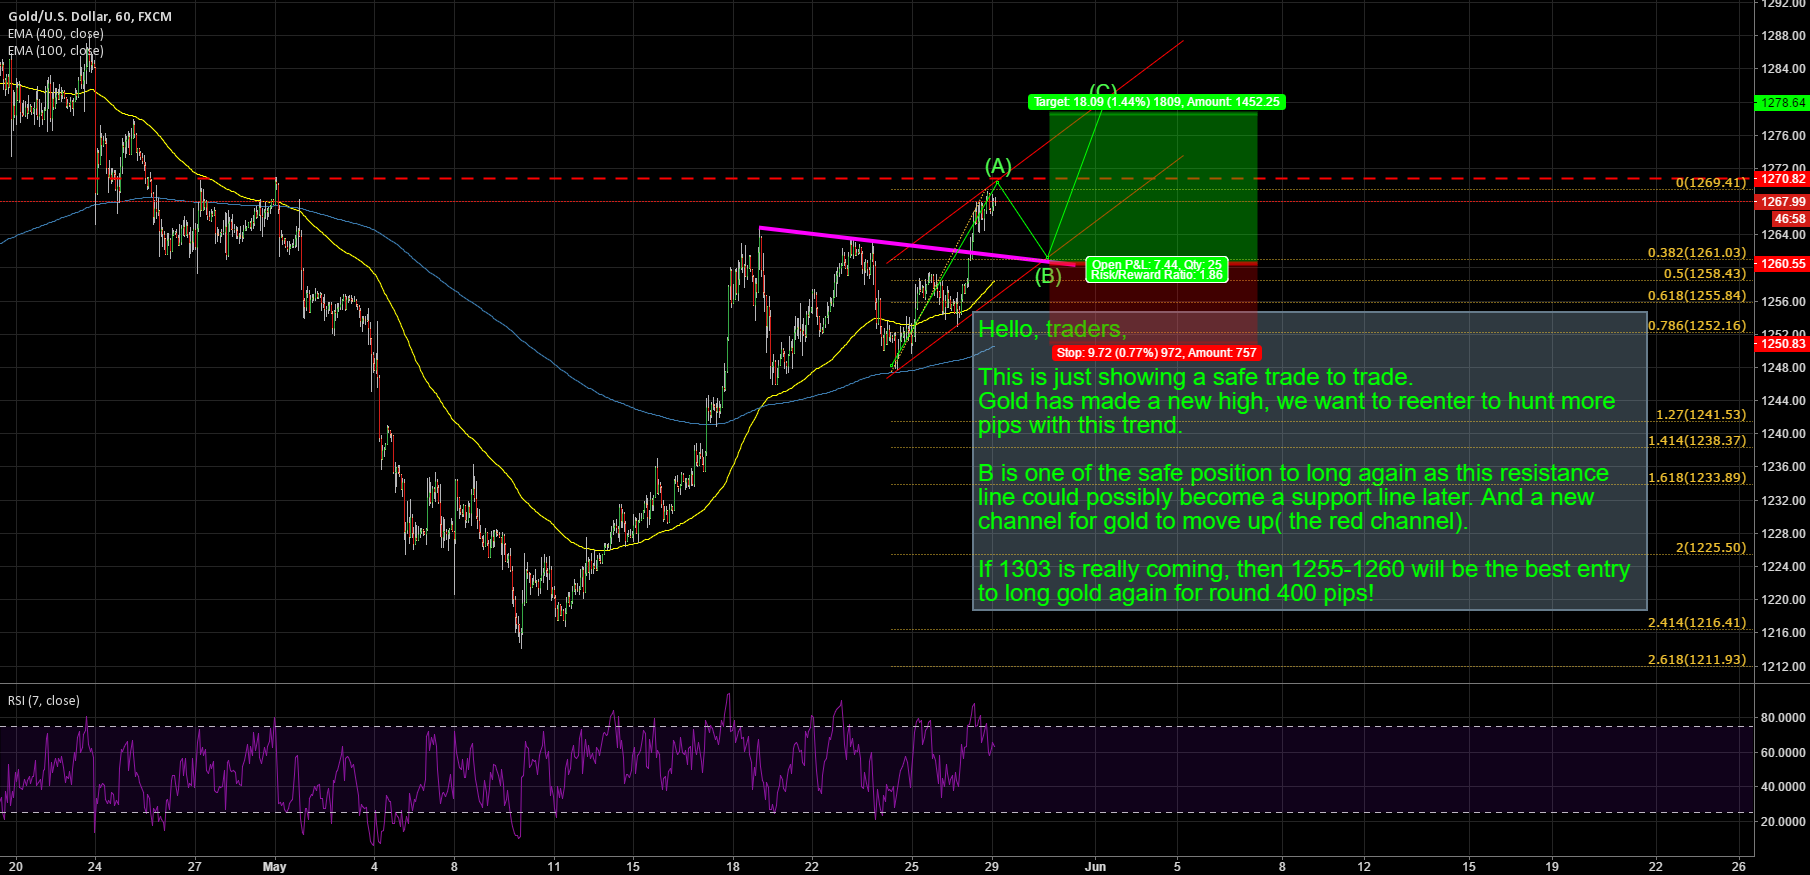 GOLD: NEW POSITION TO WAIT TO HUNT FOR 400 PIPS!